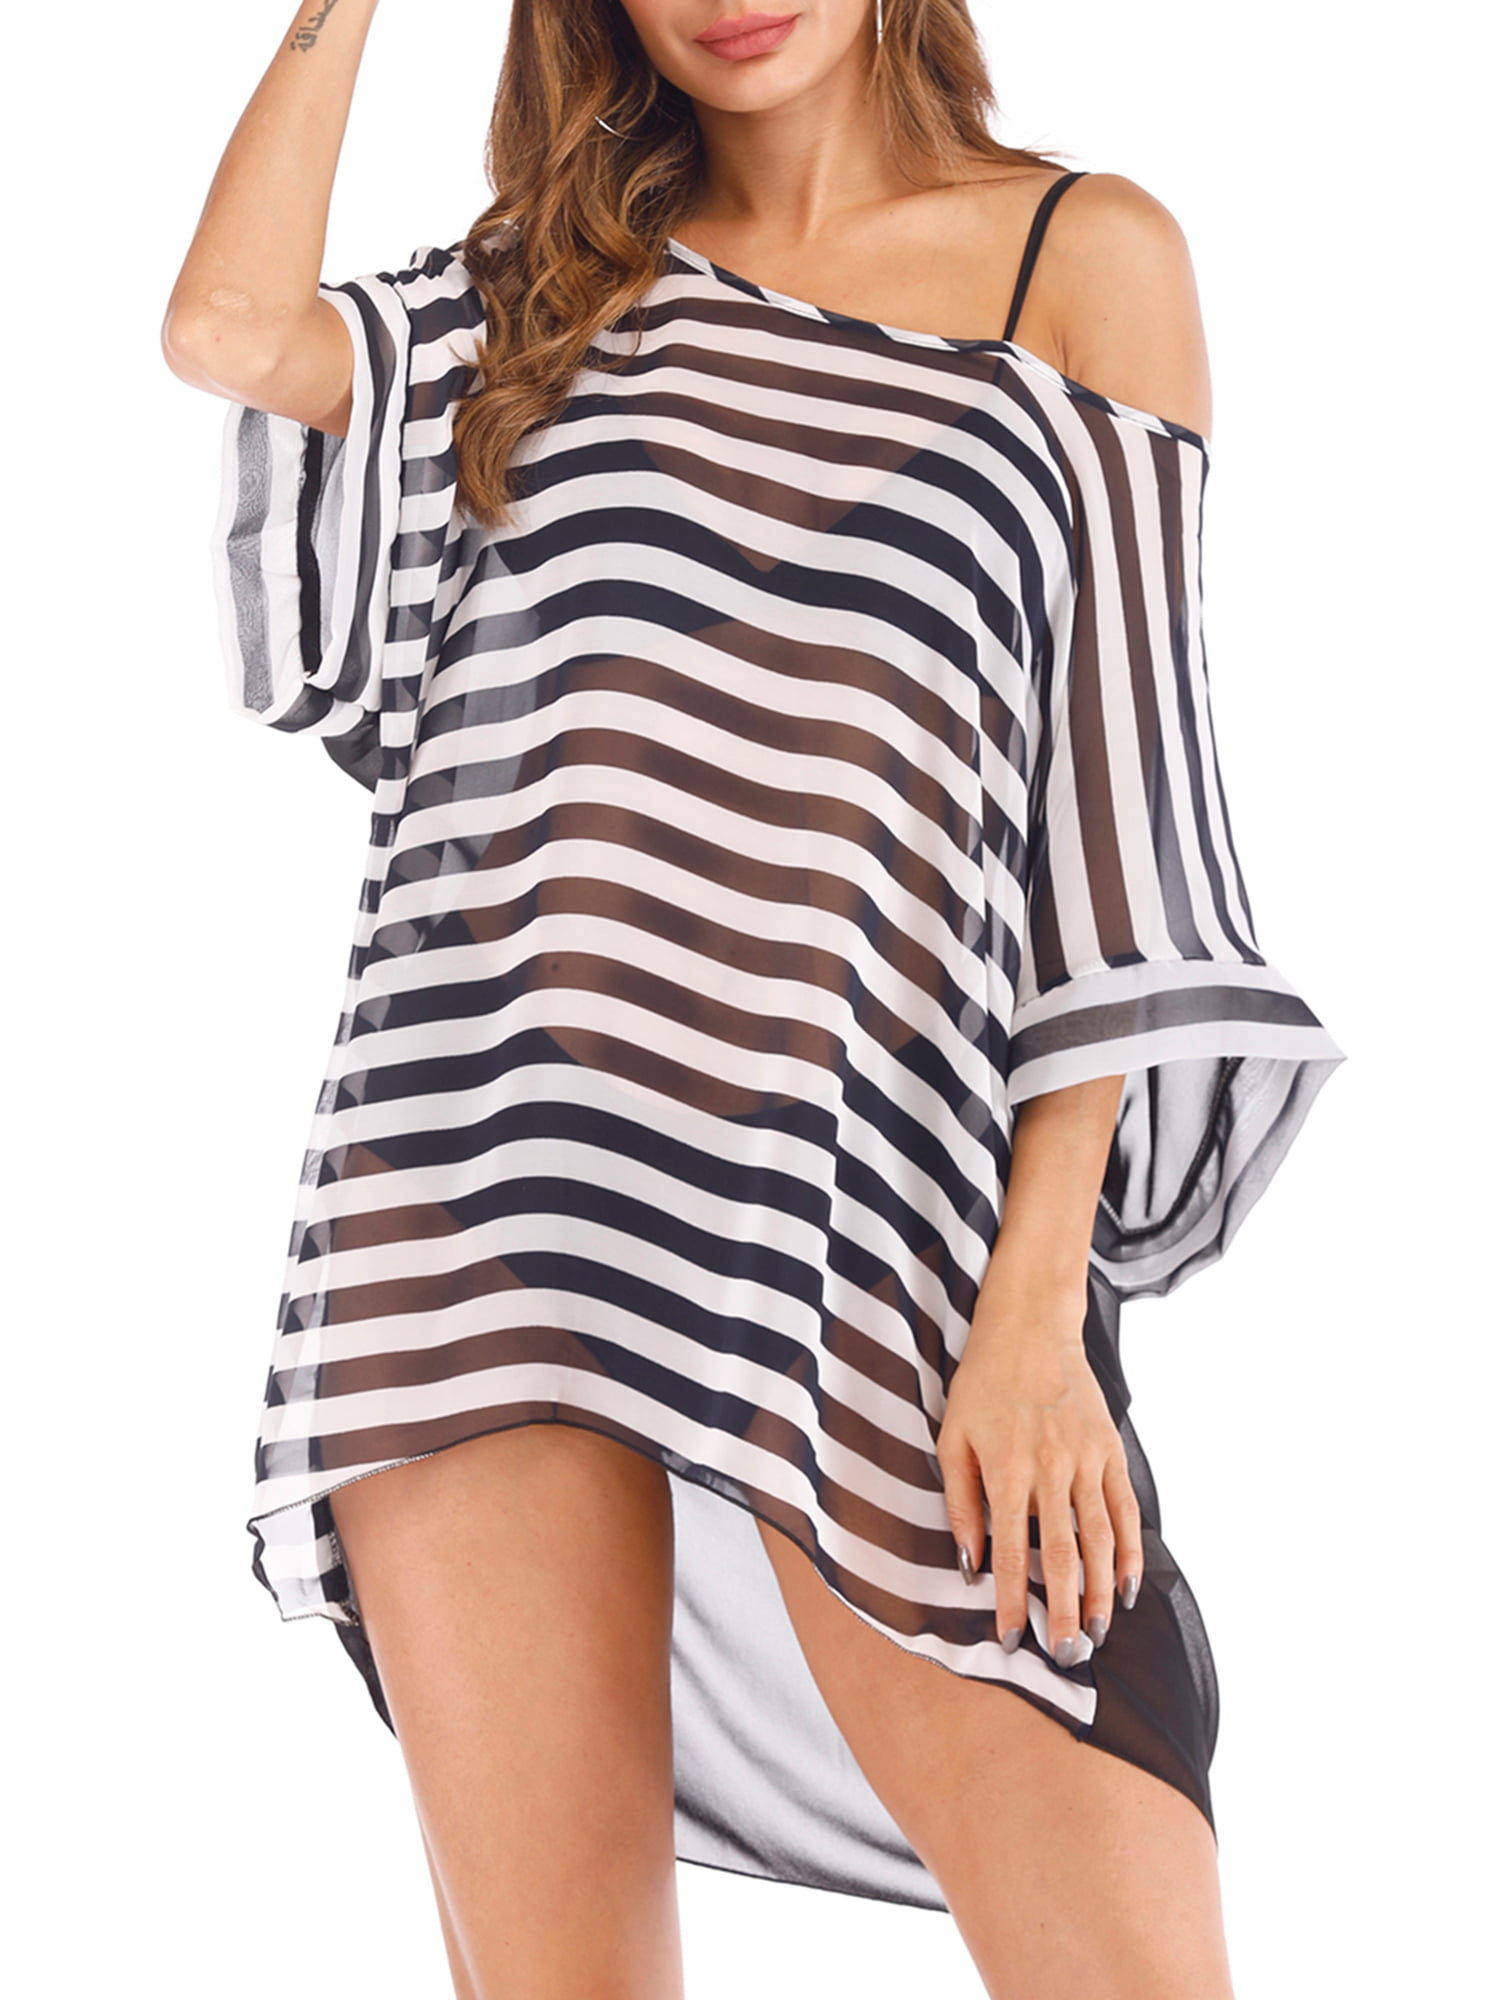 b368943619 Plus Size Sexy Stripe Chiffon Swim Cover Ups for Women Bikini Warp Cover Up  Beach Dress - Walmart.com